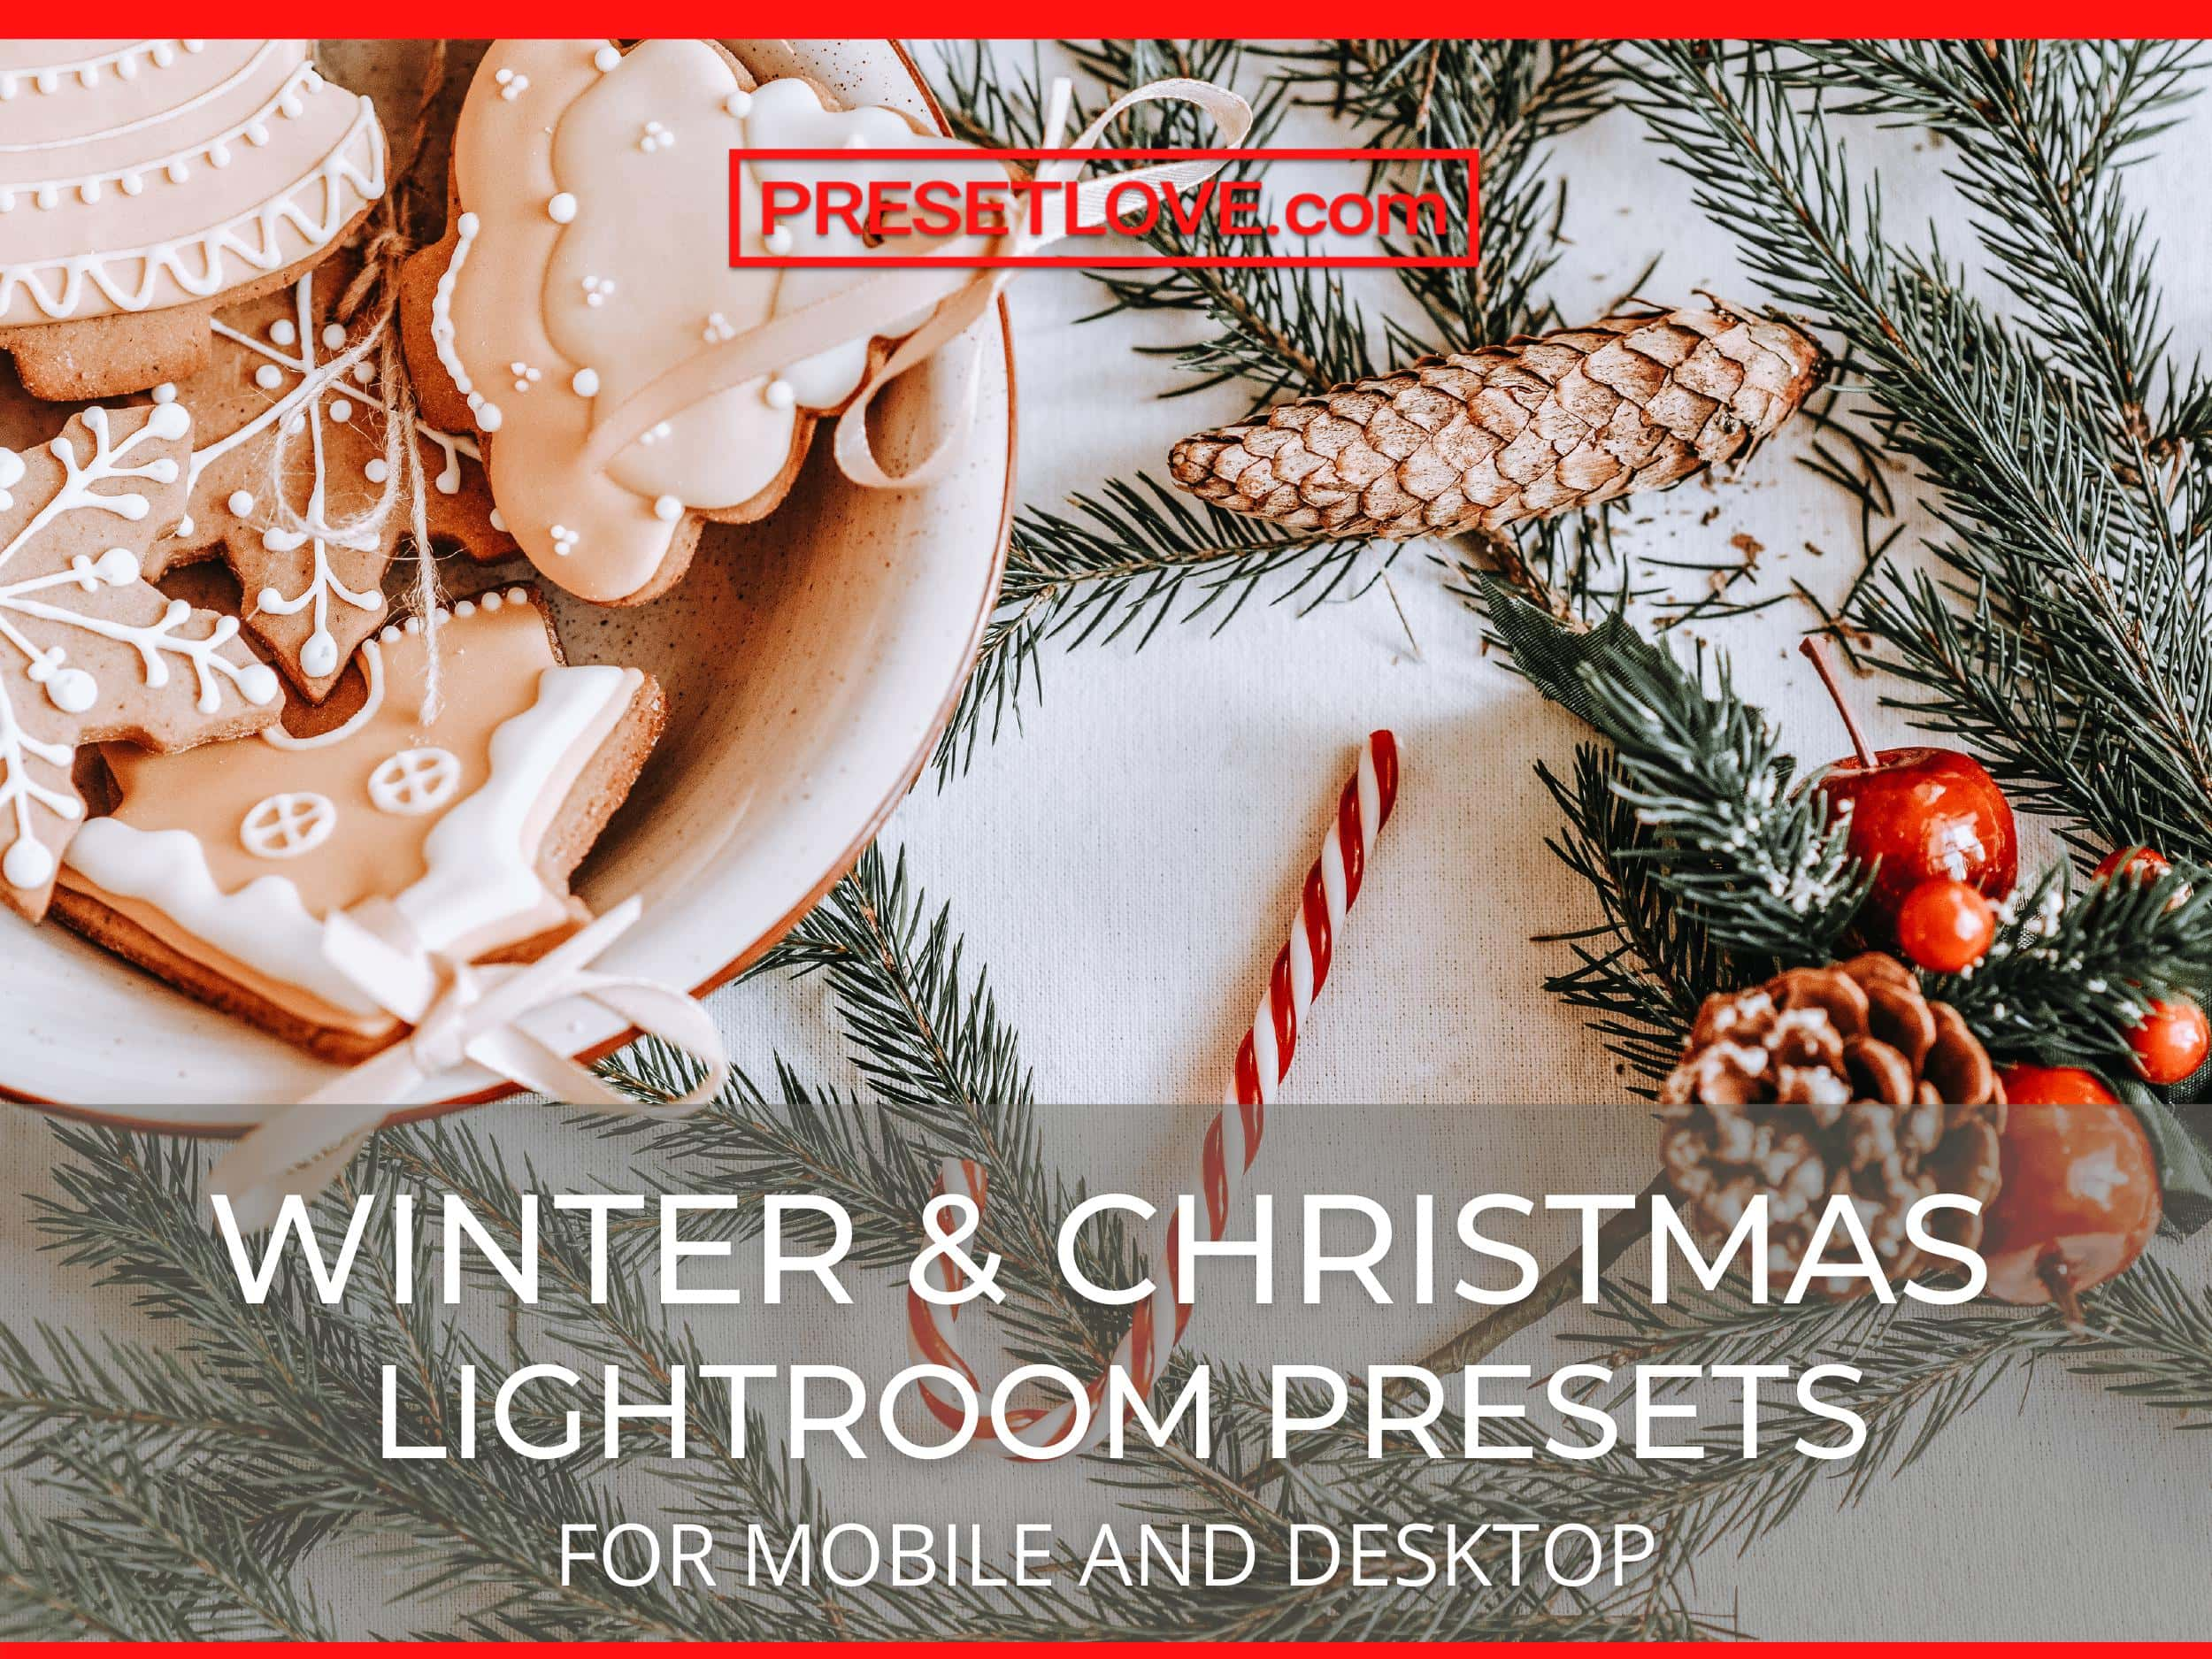 Winter and Christmas Lightroom Presets for mobile and desktop